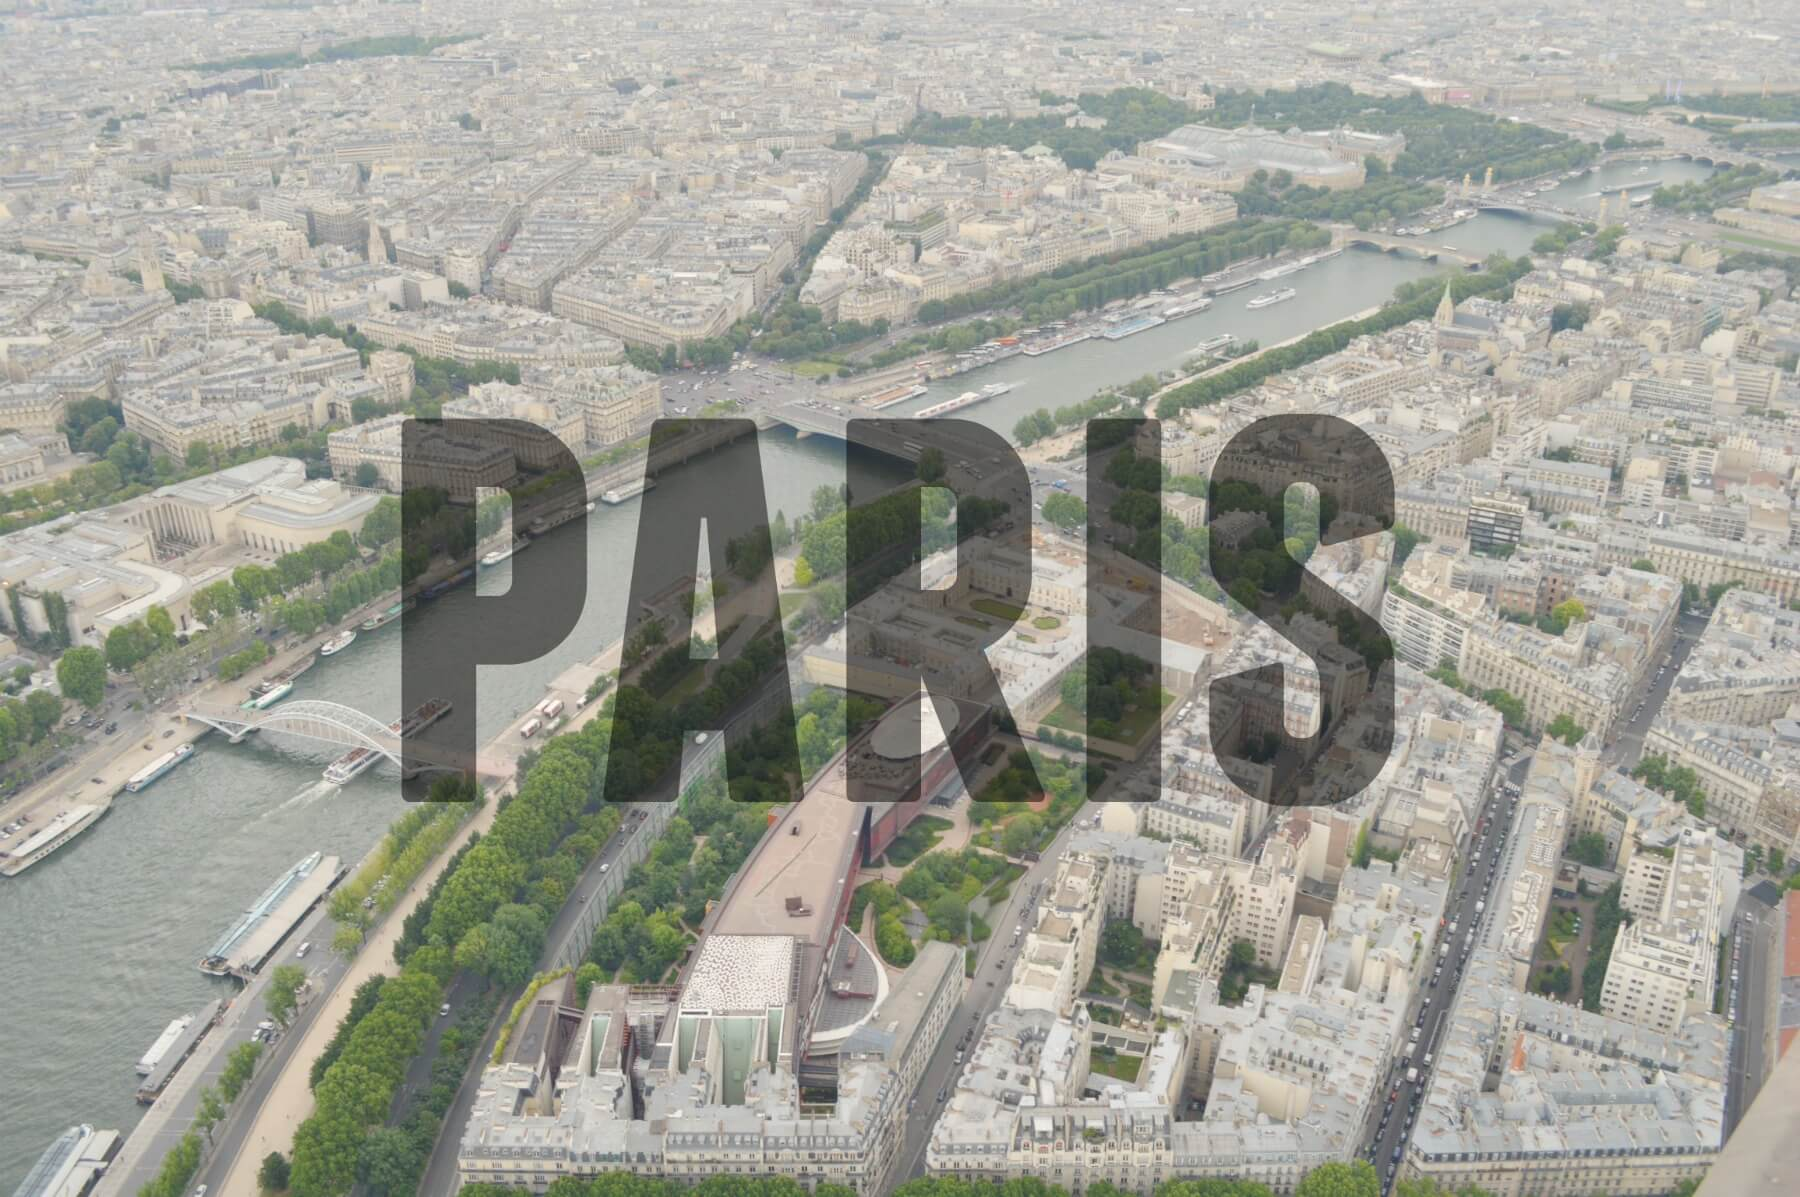 View from the Eiffel Tower with text overlay - Paris